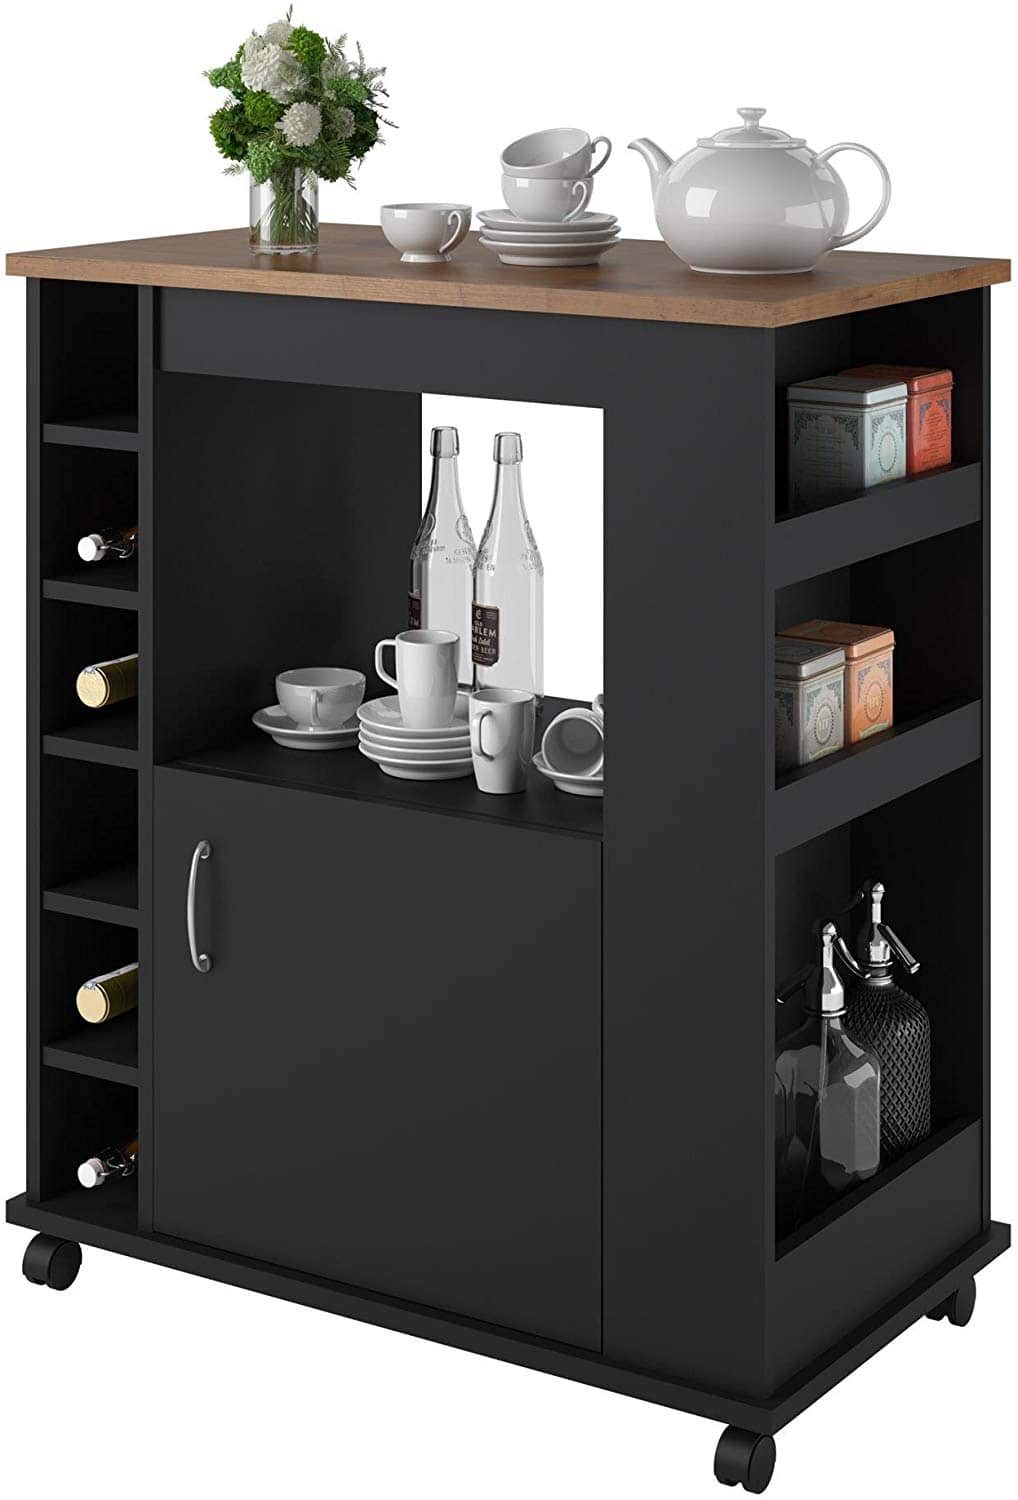 Ameriwood Home Williams Rolling Kitchen Cart $59 + Free Shipping